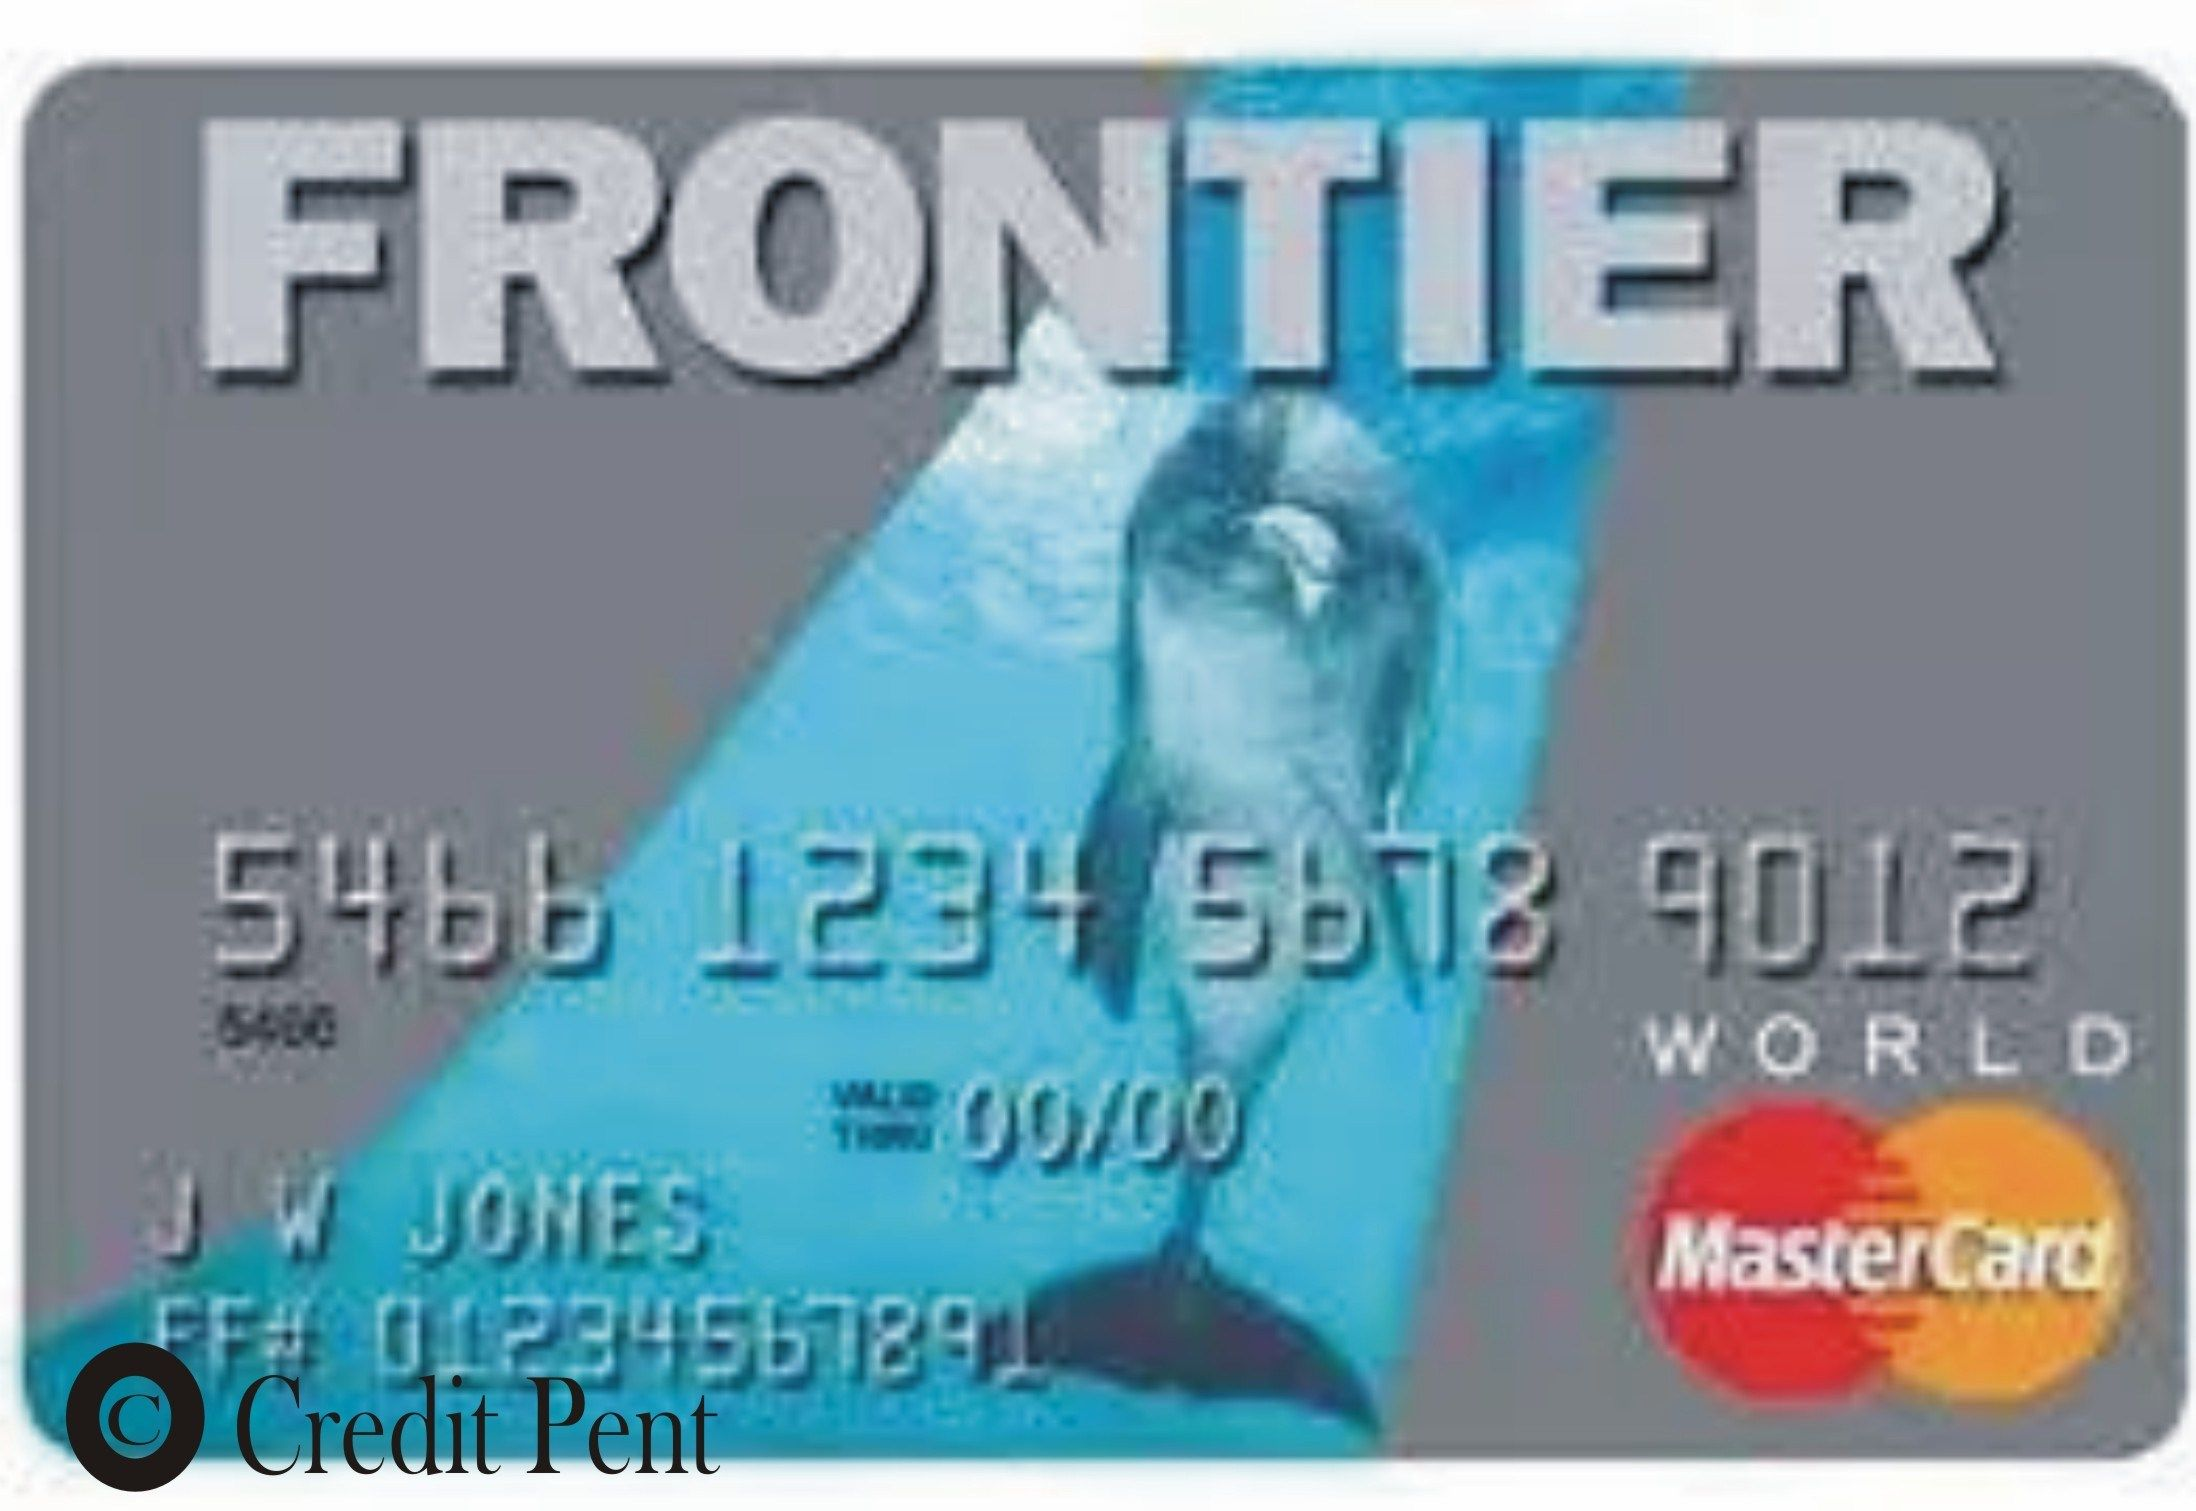 Frontier airlines credit card login airline credit cards